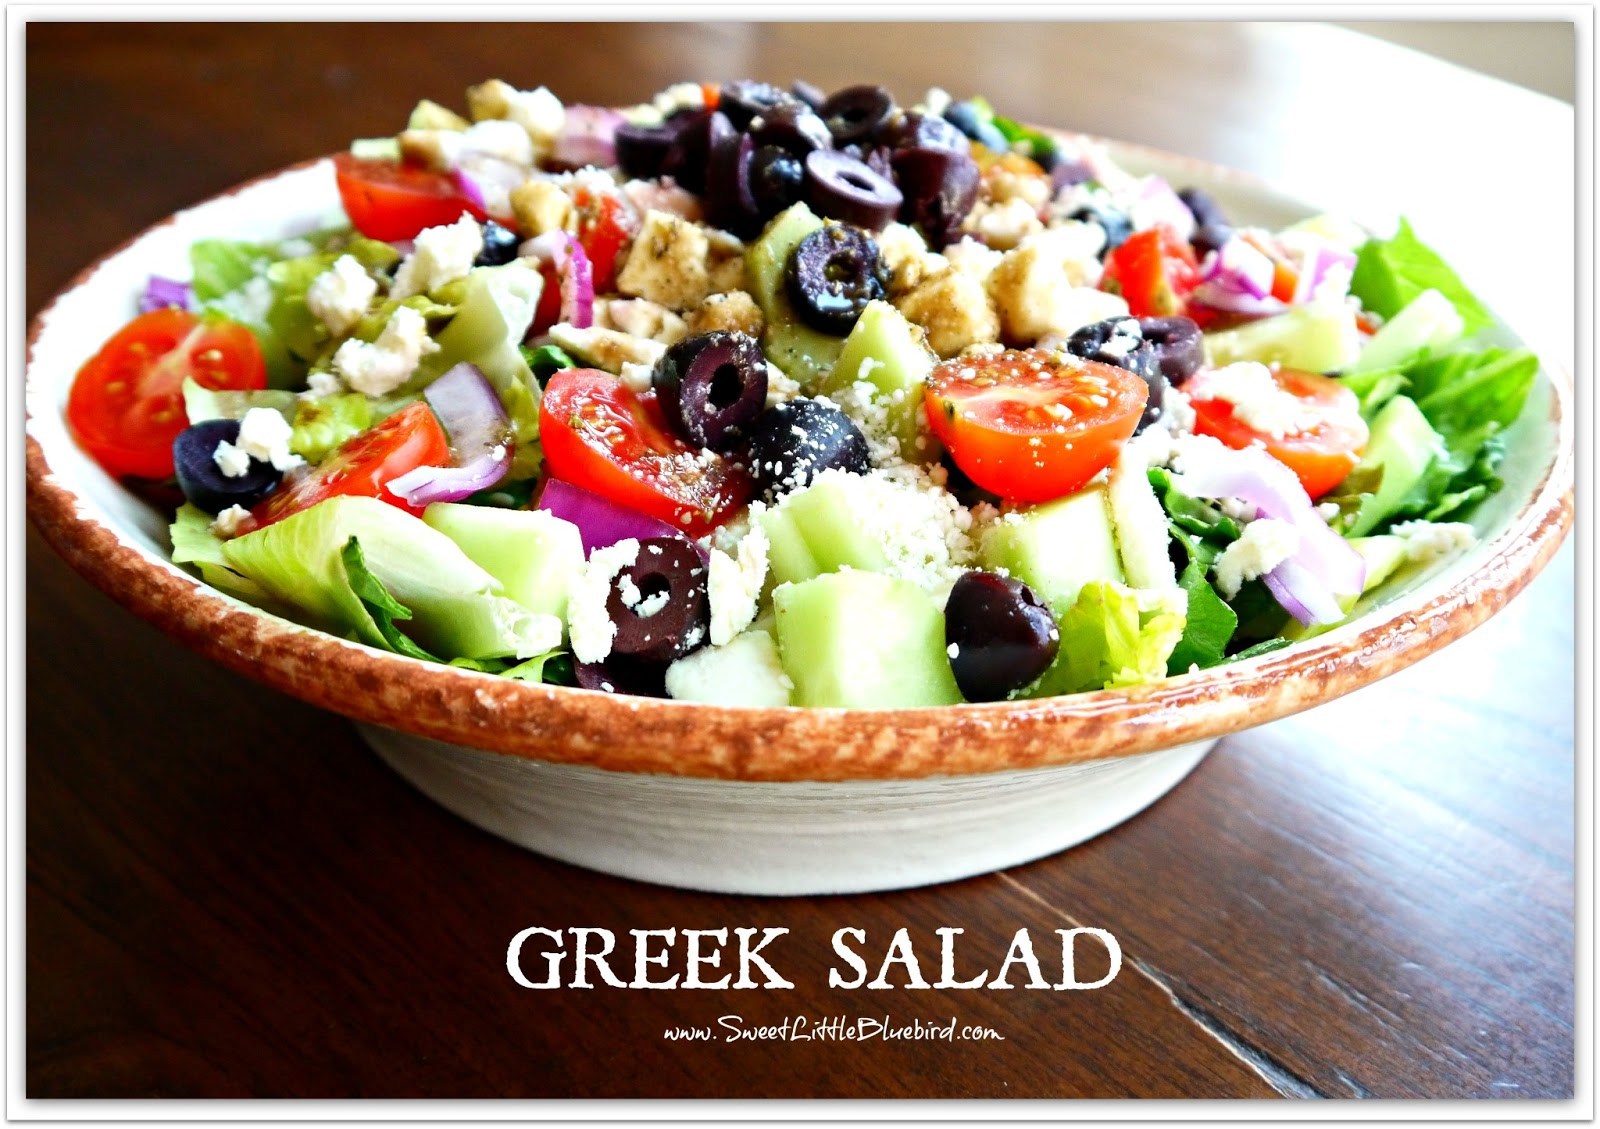 Recipes For Traditional Greek Food